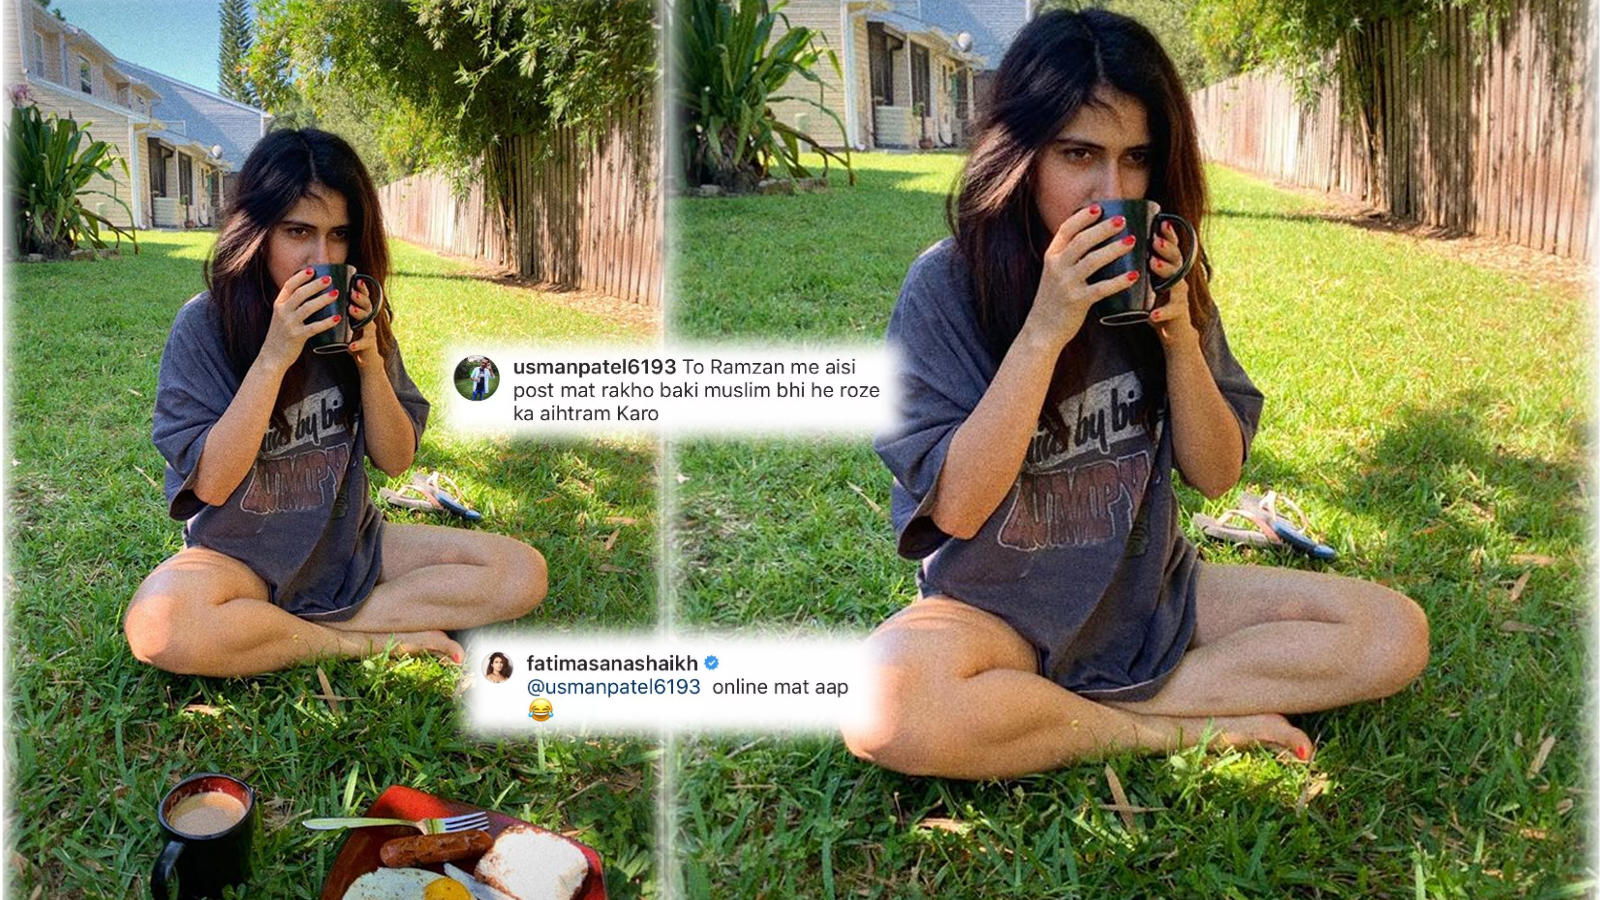 Fatima Sana Shaikh gets trolled for posing with plate of food during Ramzan, actress hits back